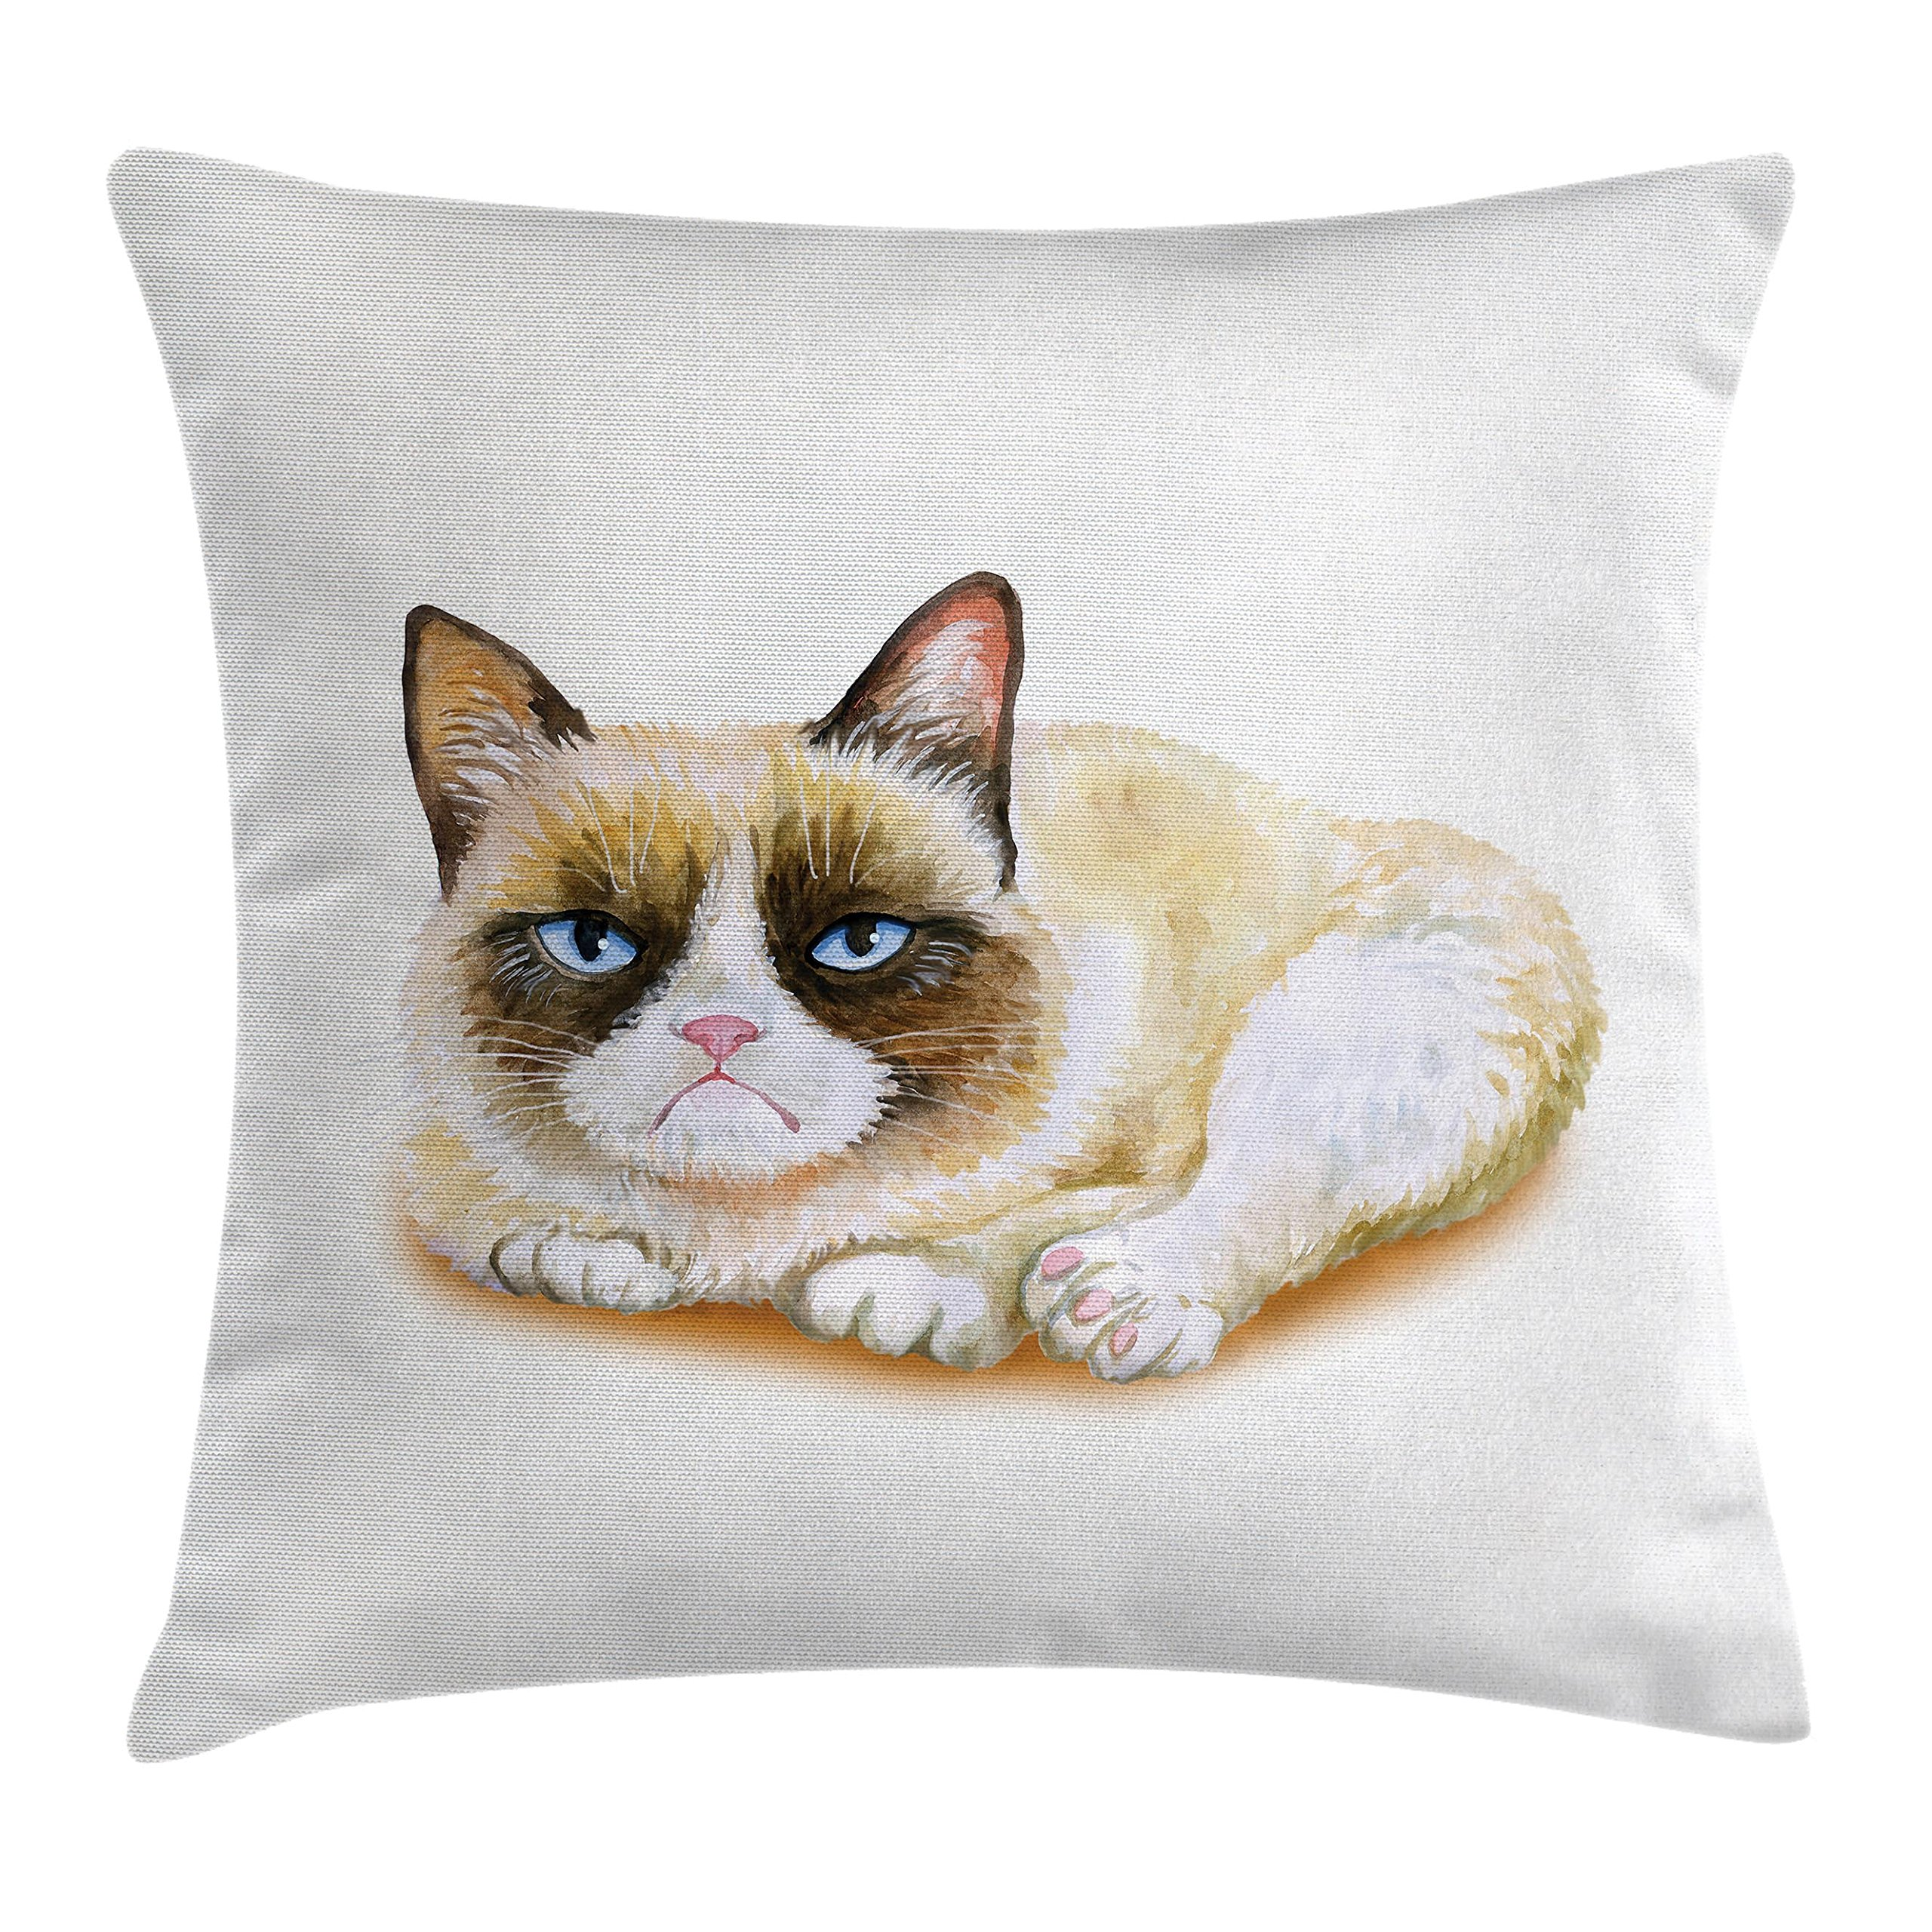 Ambesonne Animal Throw Pillow Cushion Cover, Grumpy Siamese Cat Angry Paws Asian Kitten Moody Feline Fluffy Love Art Print, Decorative Square Accent Pillow Case, 16 X 16 Inches, Brown and Beige